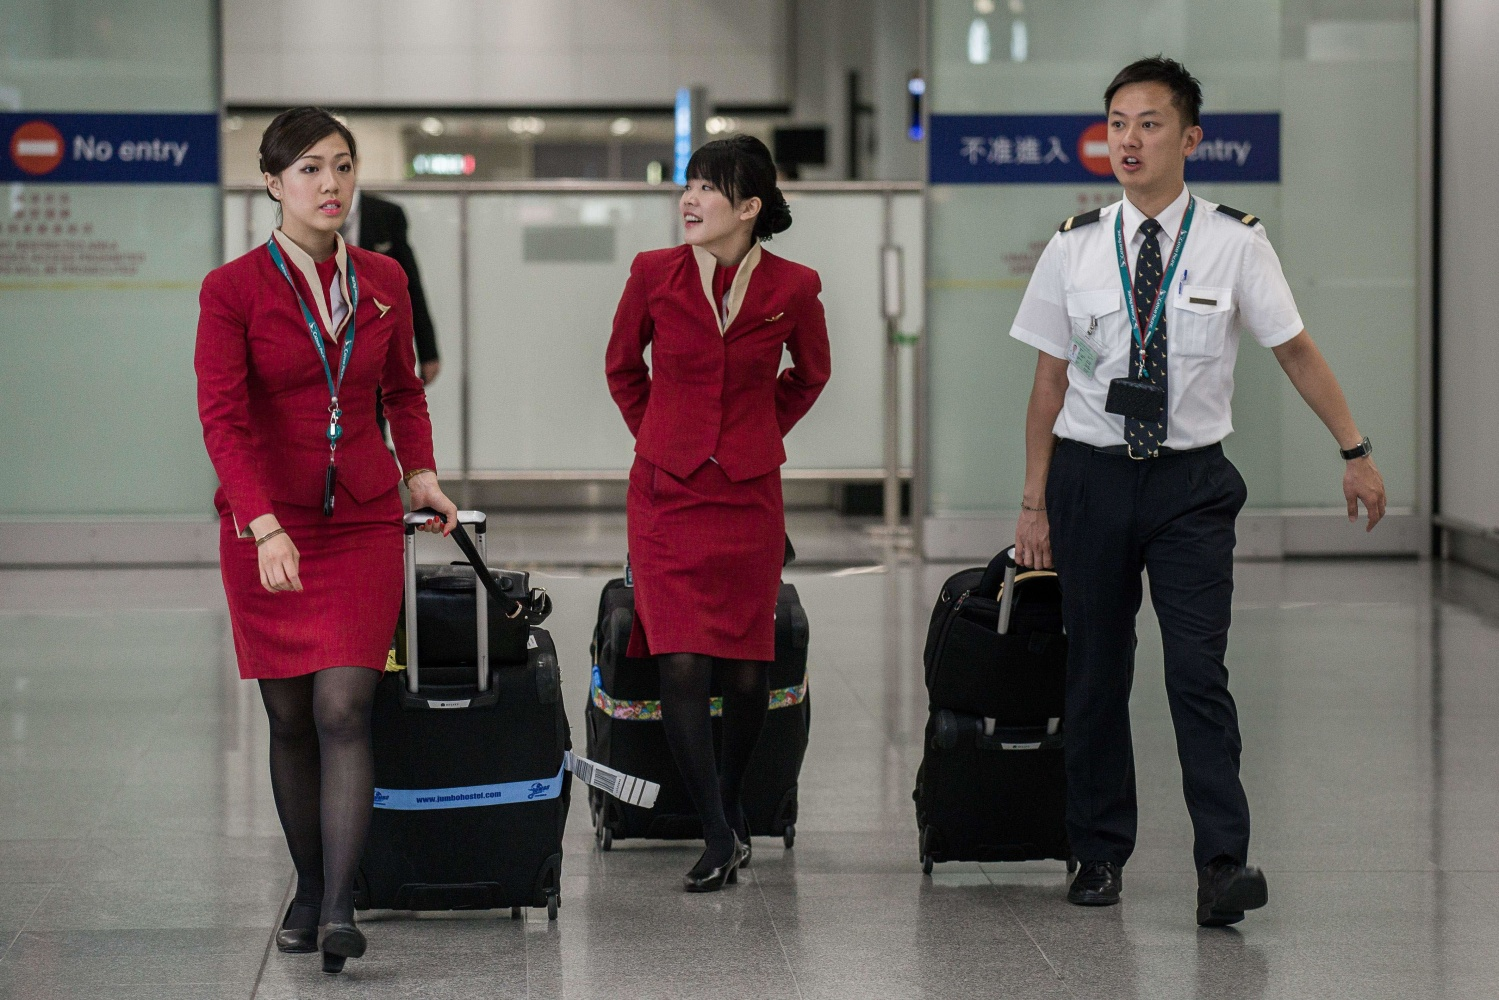 Cathay Pacific Uniforms Are Too Sexy Says Flight